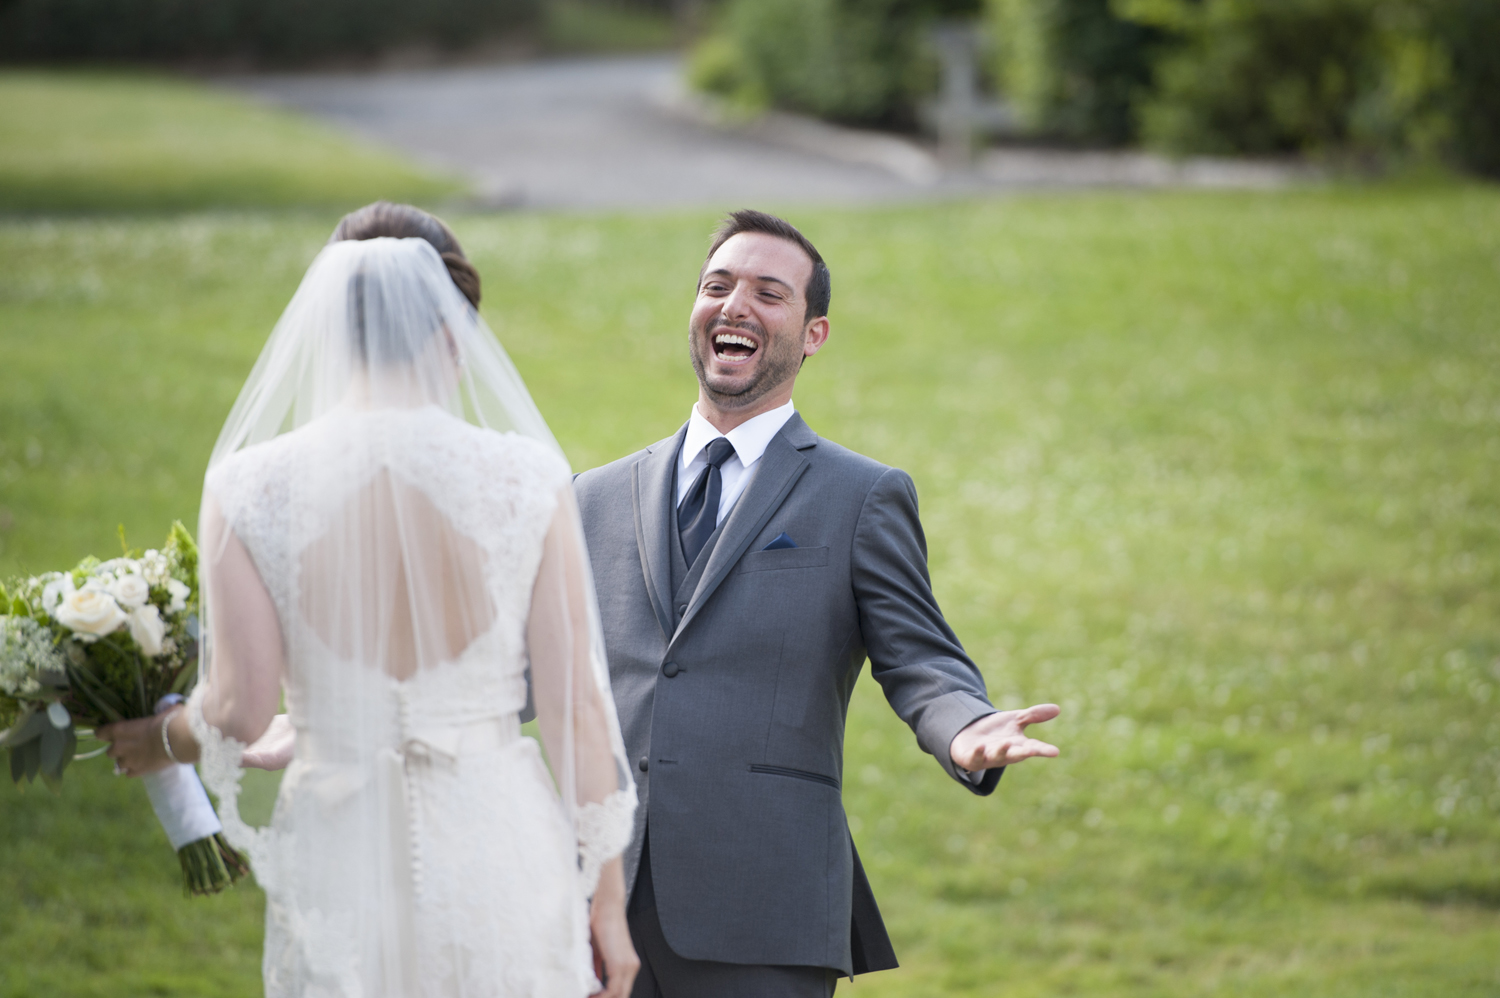 groom reacts when seeing bride for first time on their wedding day at the Orange Lawn Tennis Club